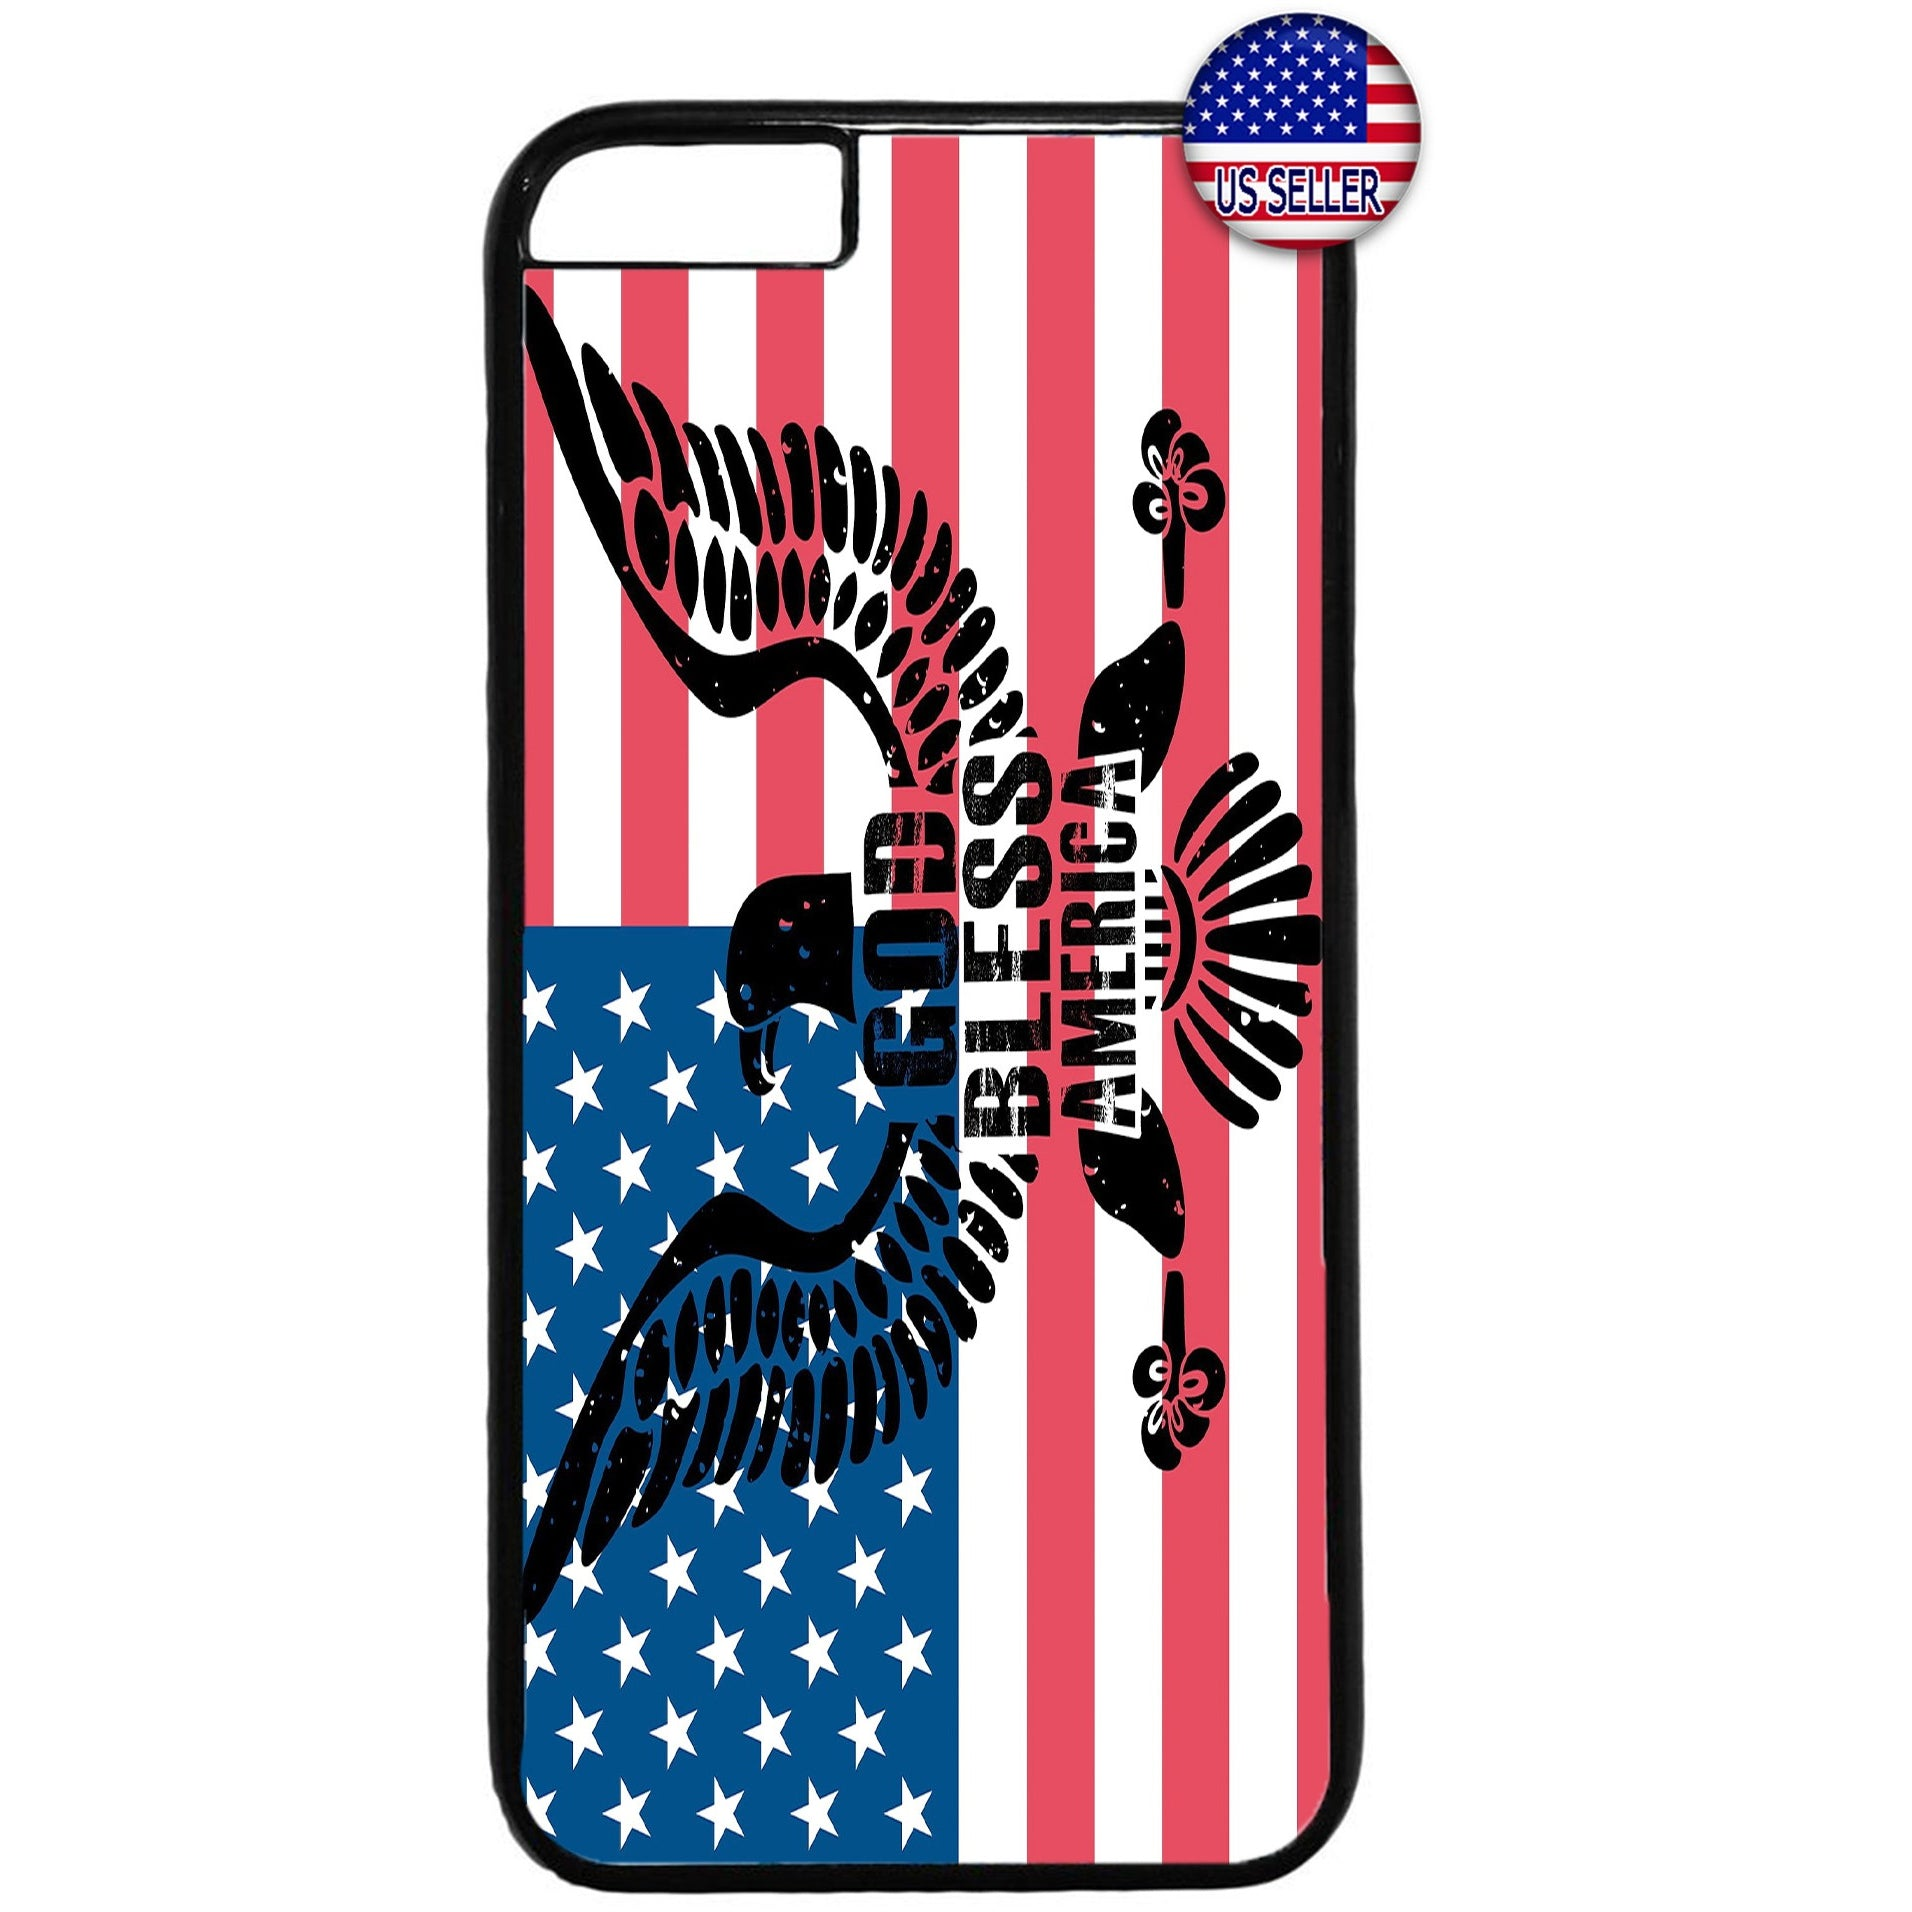 God Bless USA Flag Rubber Case Cover For Iphone